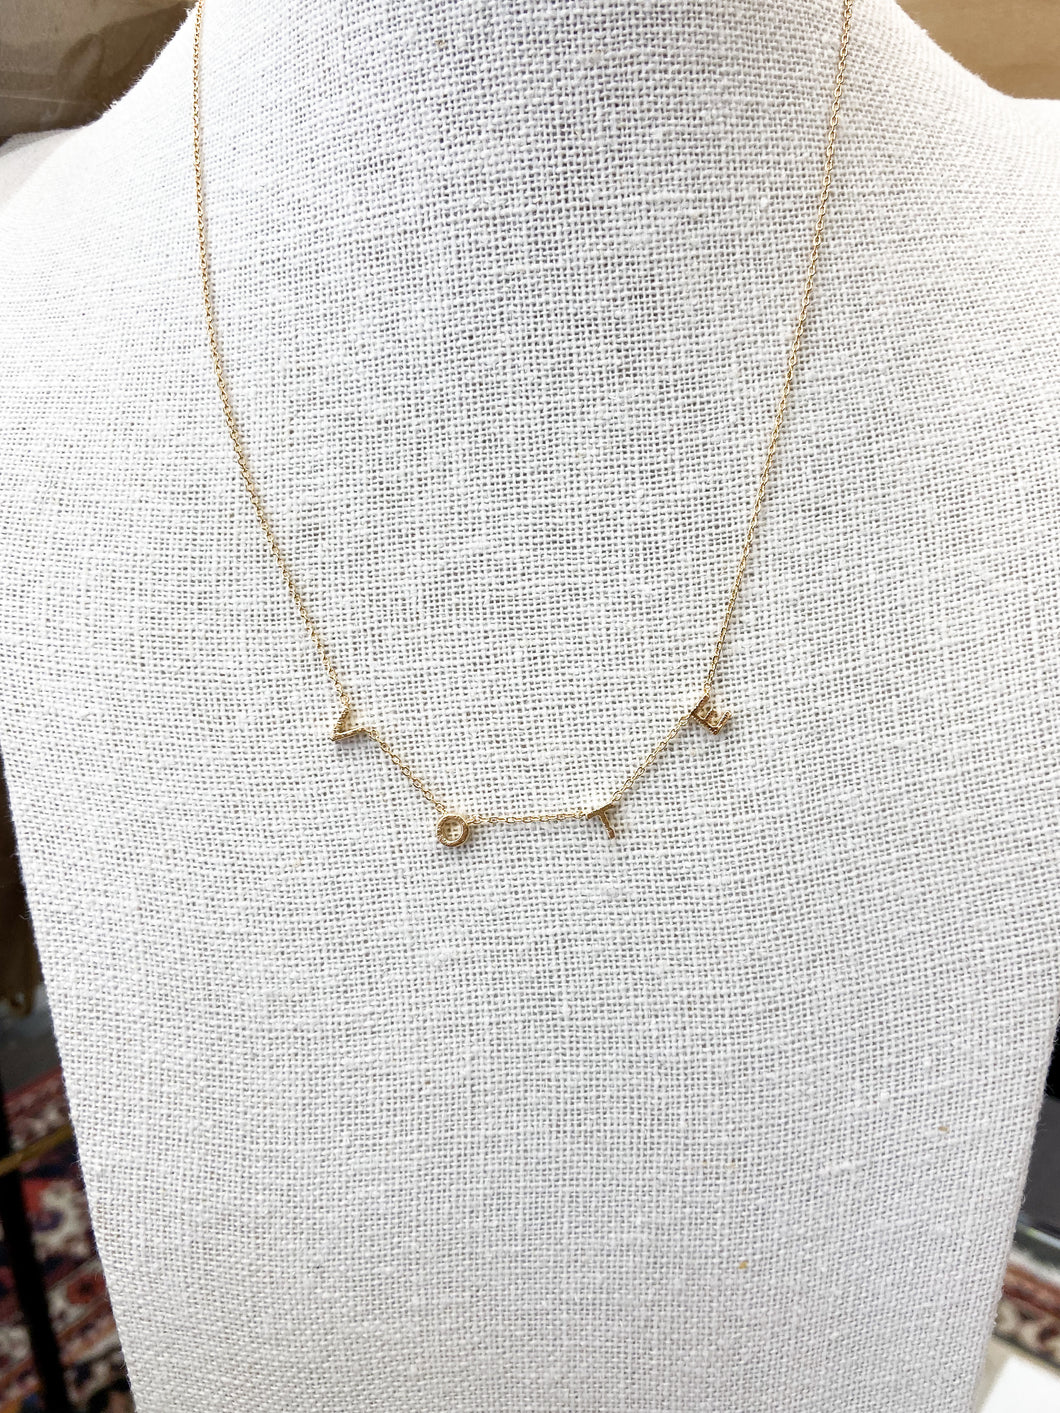 VOTE Necklace in Gold